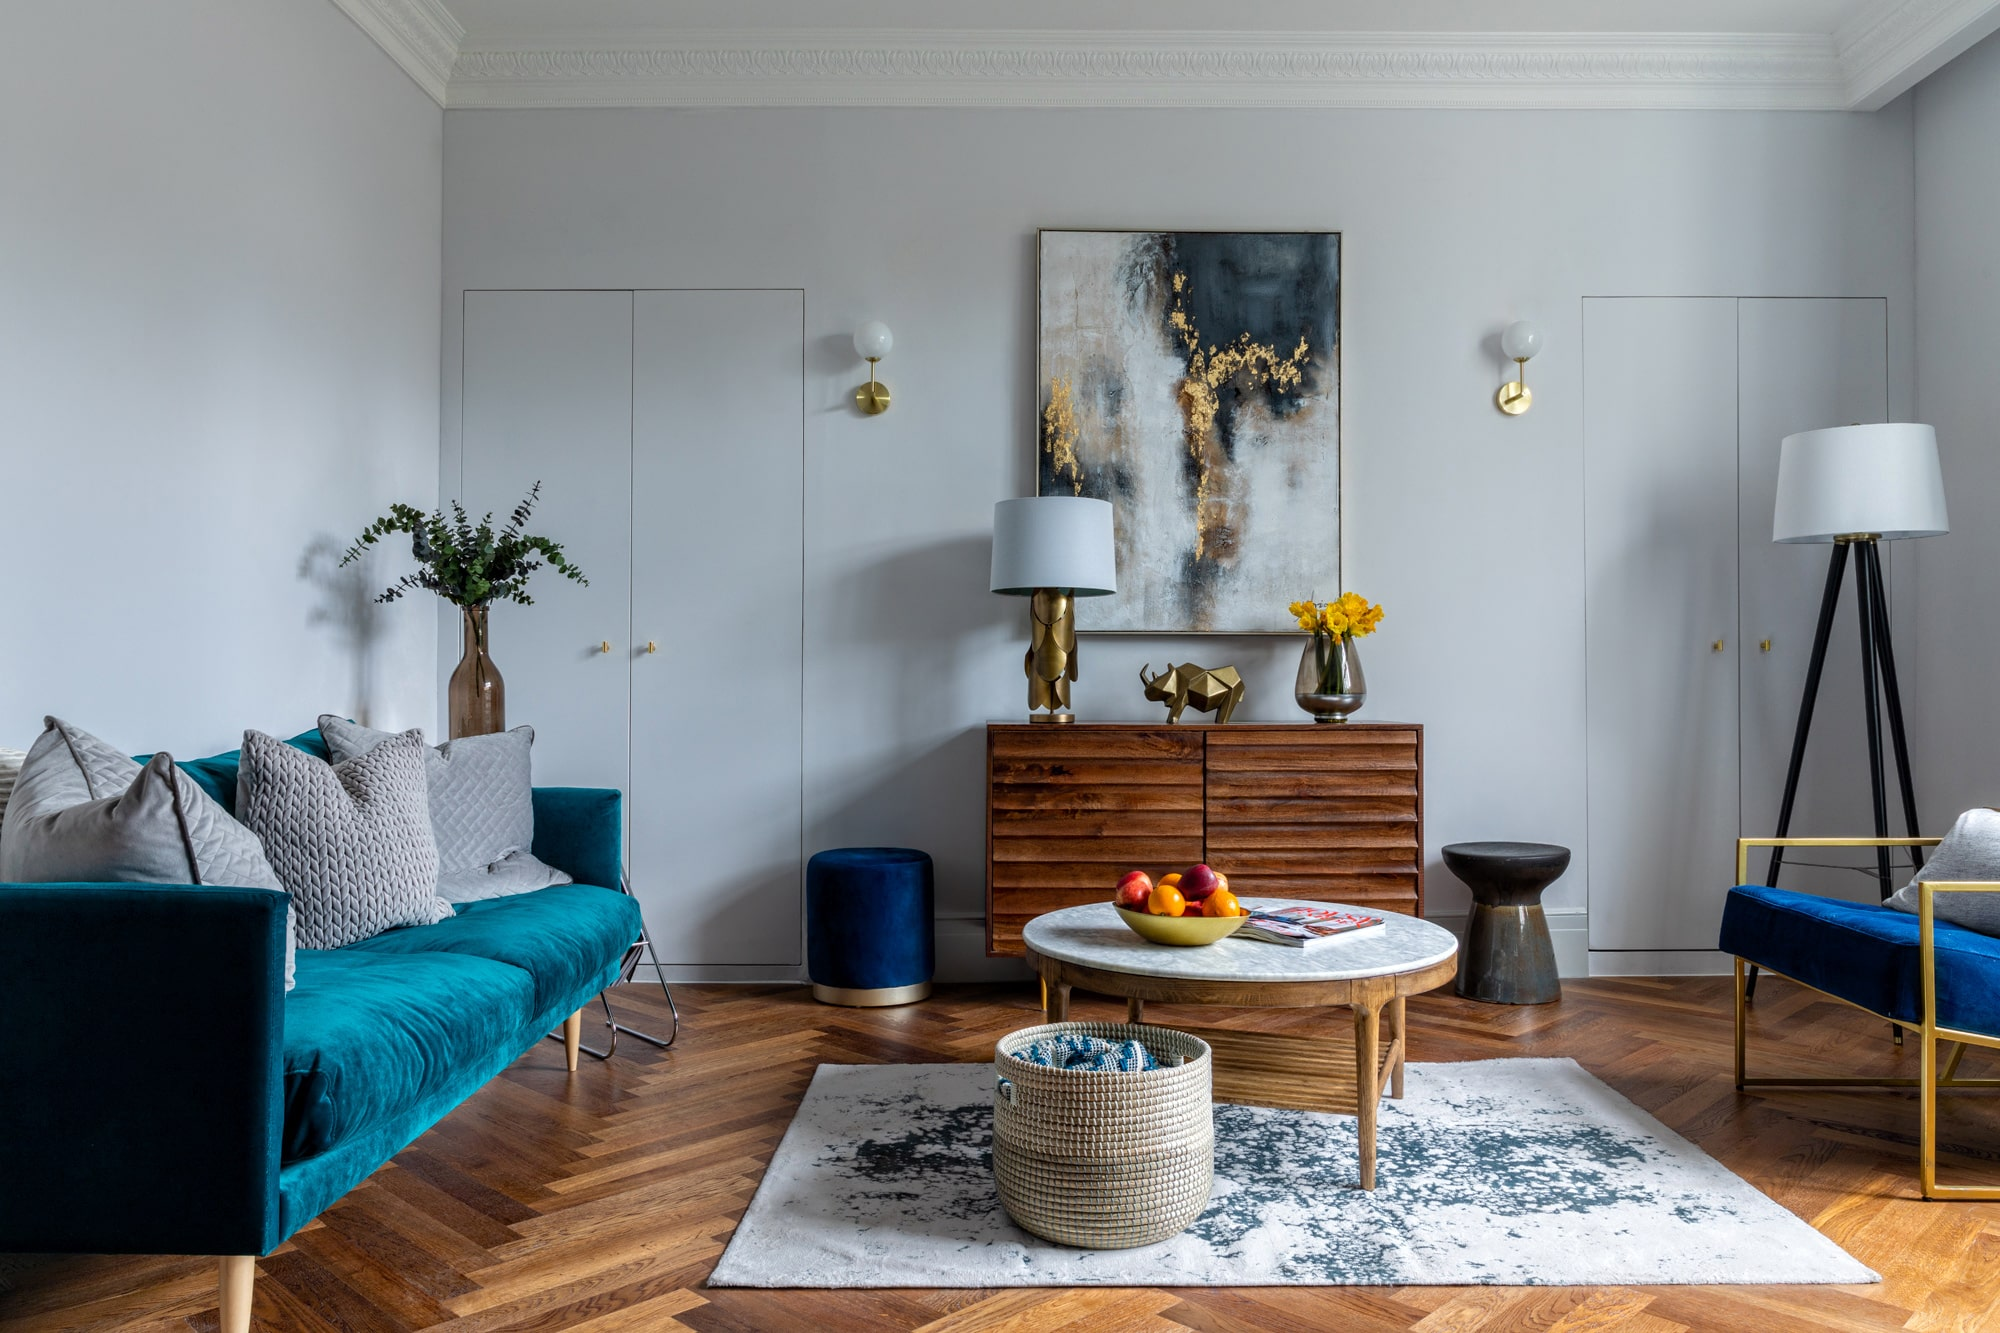 Overview interior photograph of a living room with a wooden cabinet, abstract painting, wooden table with marble top, teal blue sofa and abstract painting